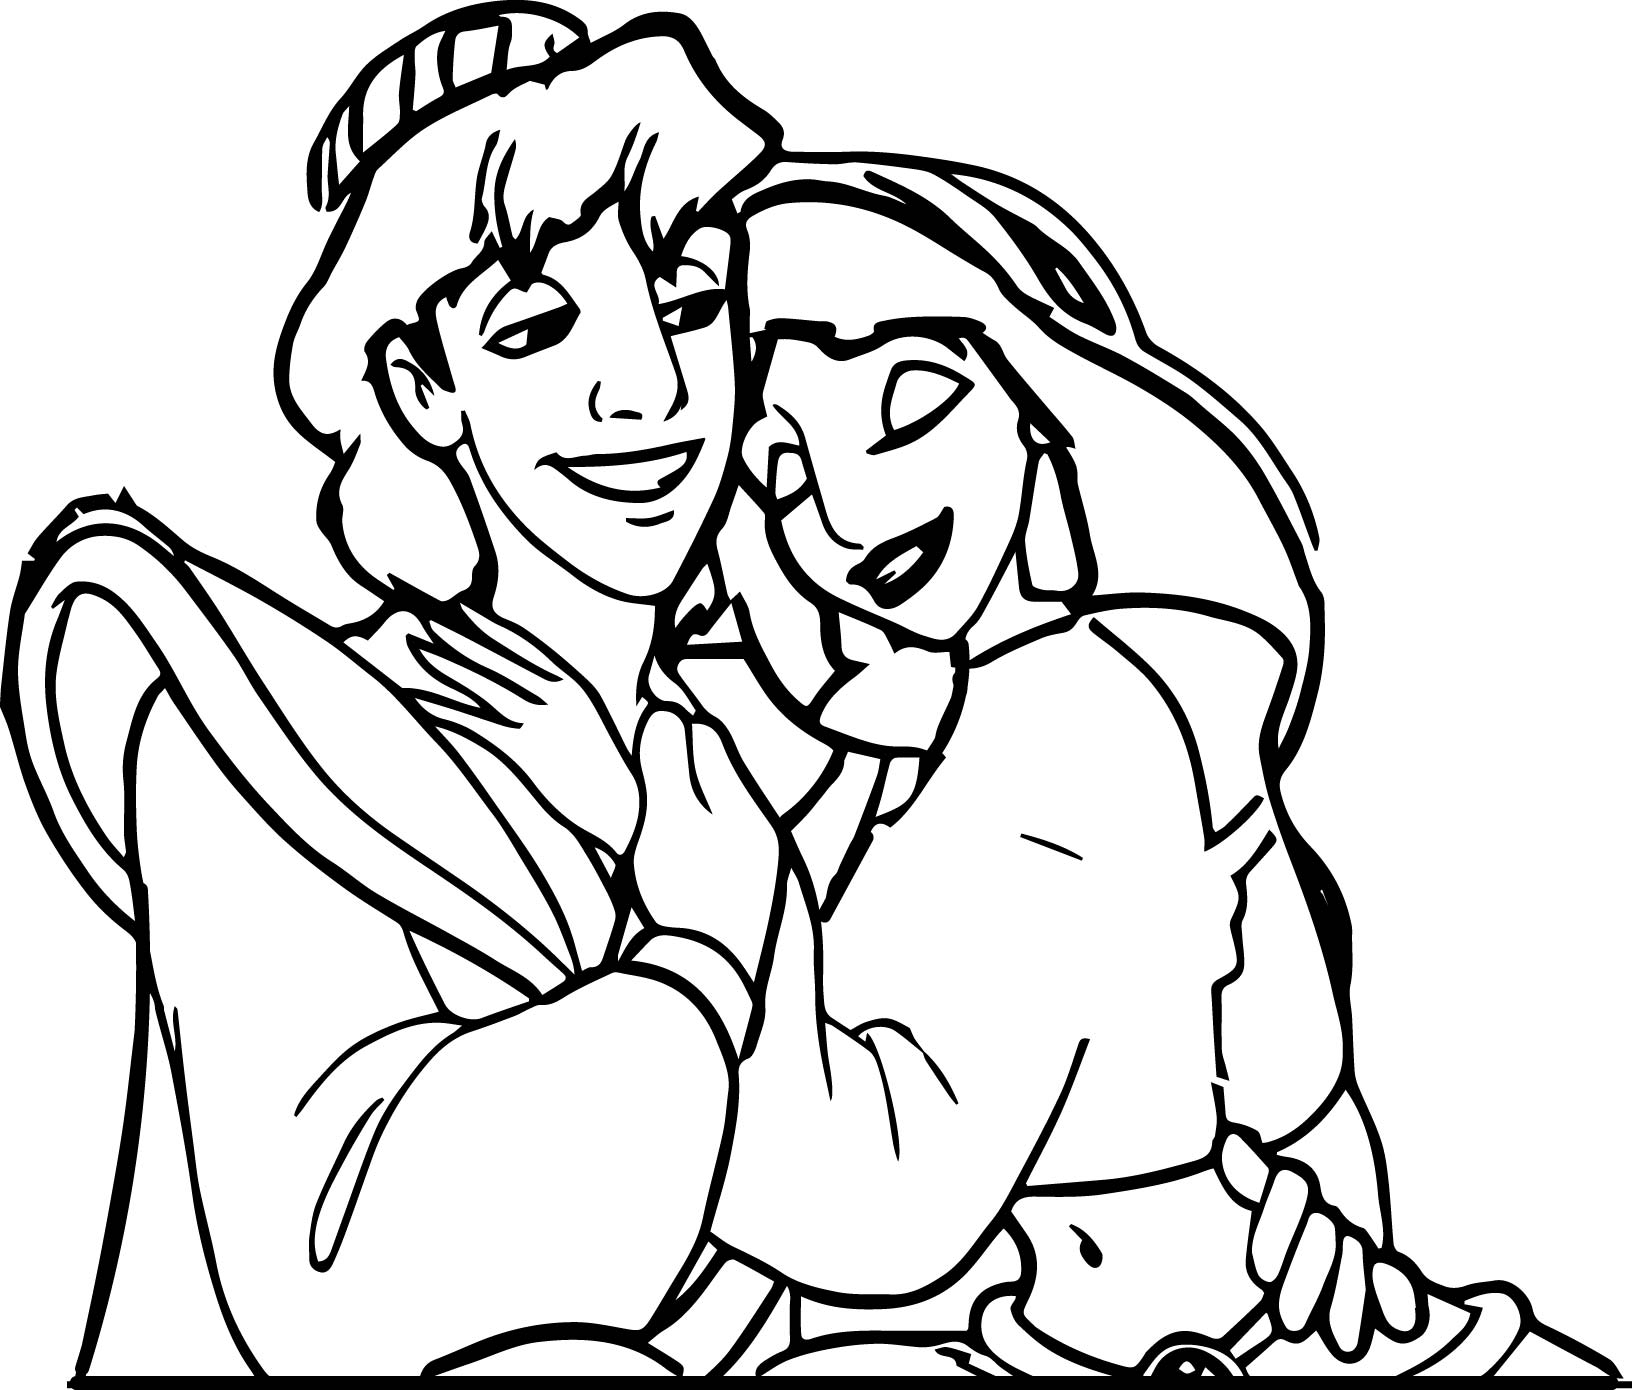 Walt Disney Prince Aladdin Characters Jasmine Is Alive Coloring Page